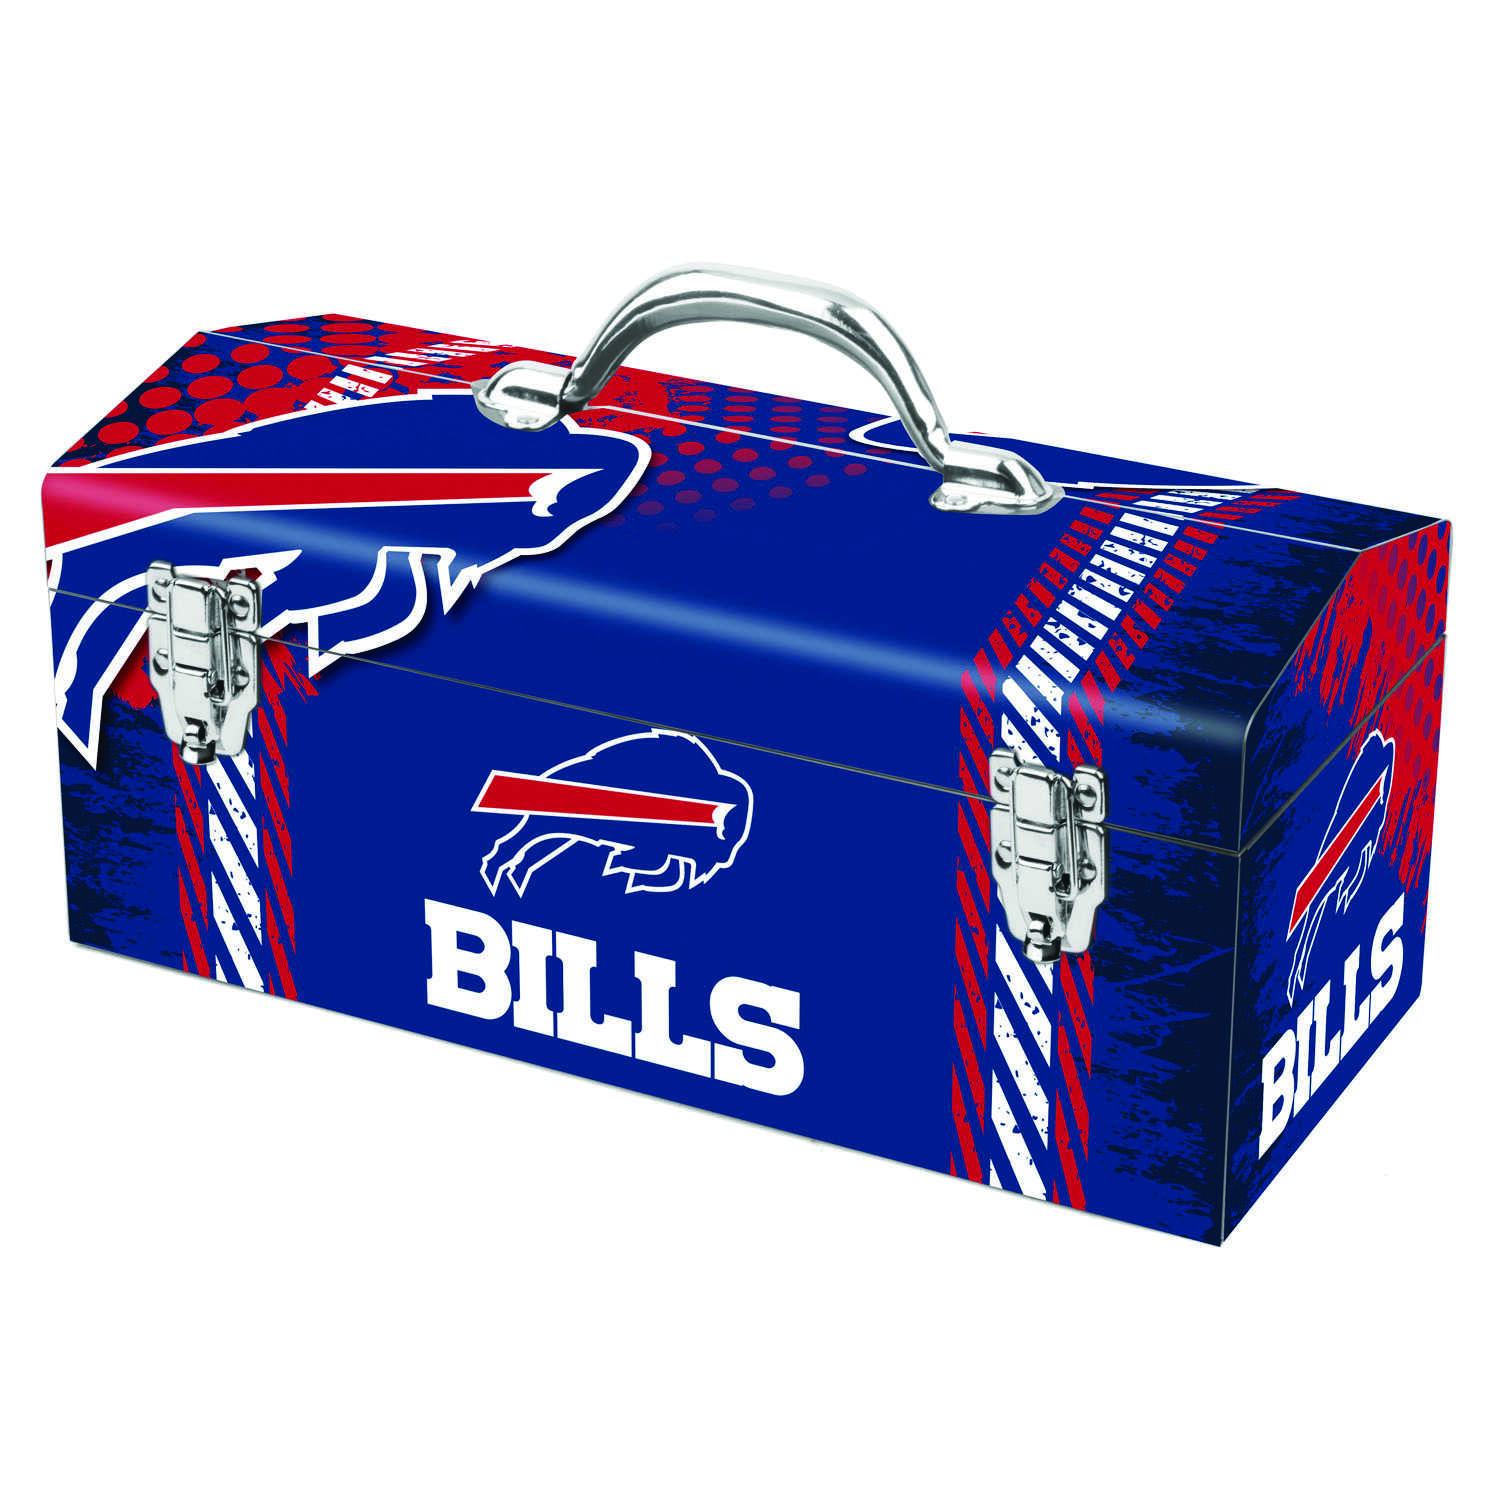 Sainty International  16.25 in. Steel  Buffalo Bills  Art Deco Tool Box  7.1 in. W x 7.75 in. H